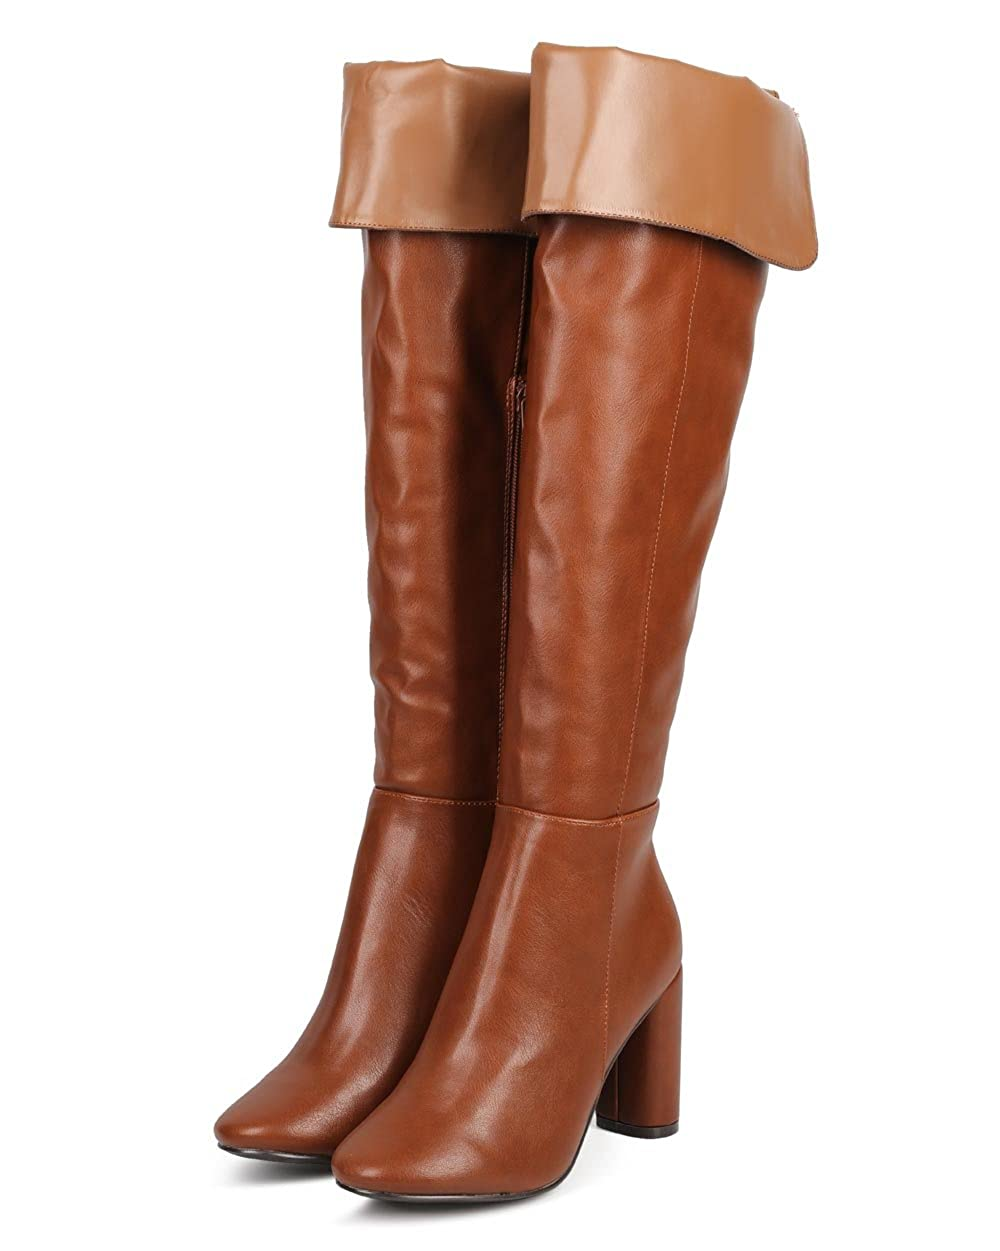 Women's Tan Faux Leather Fold Over Knee-High Tailored Pirate Boot - DeluxeAdultCostumes.com